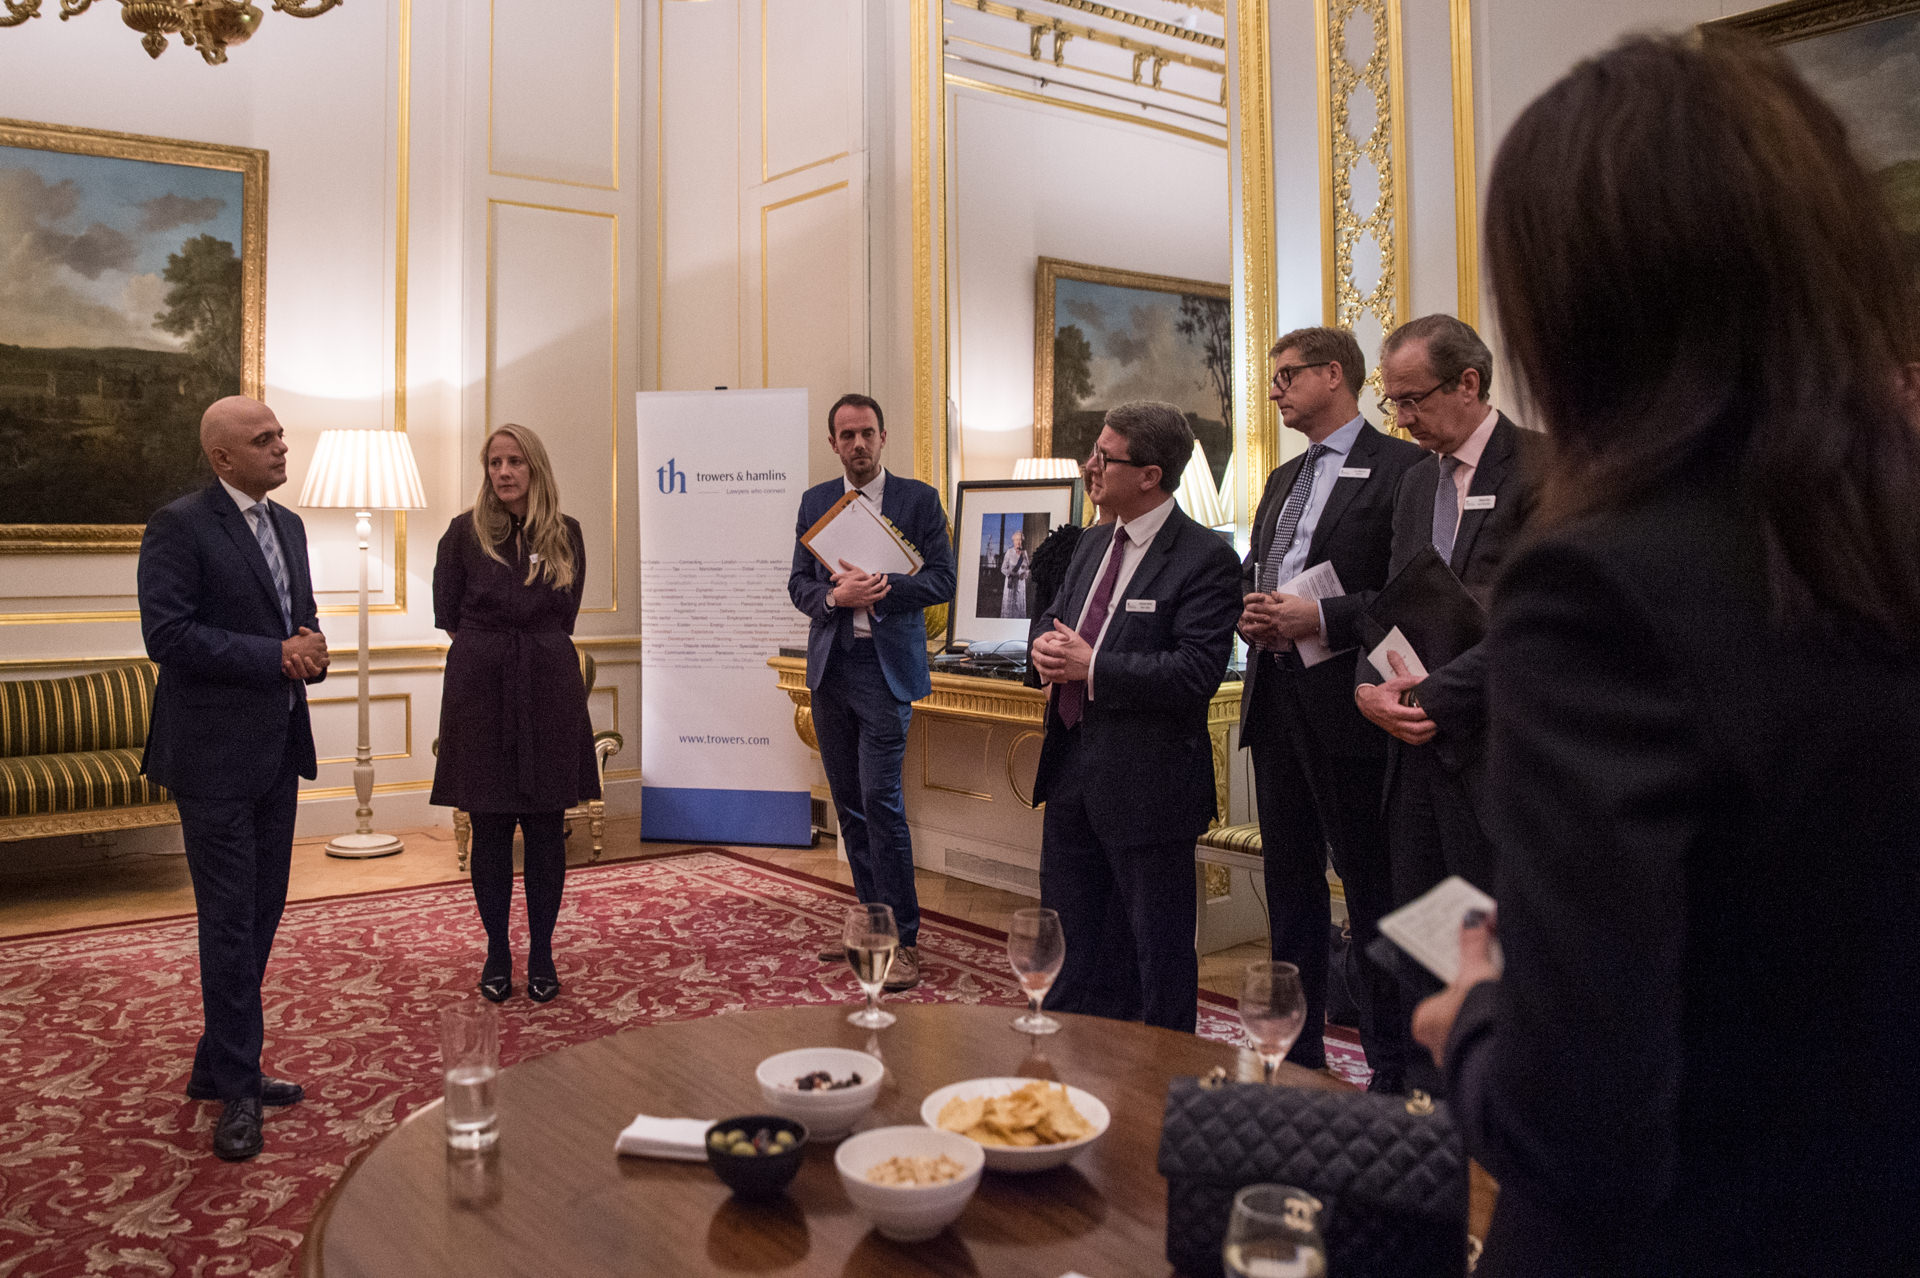 UK ministers meeting in Lancaster House